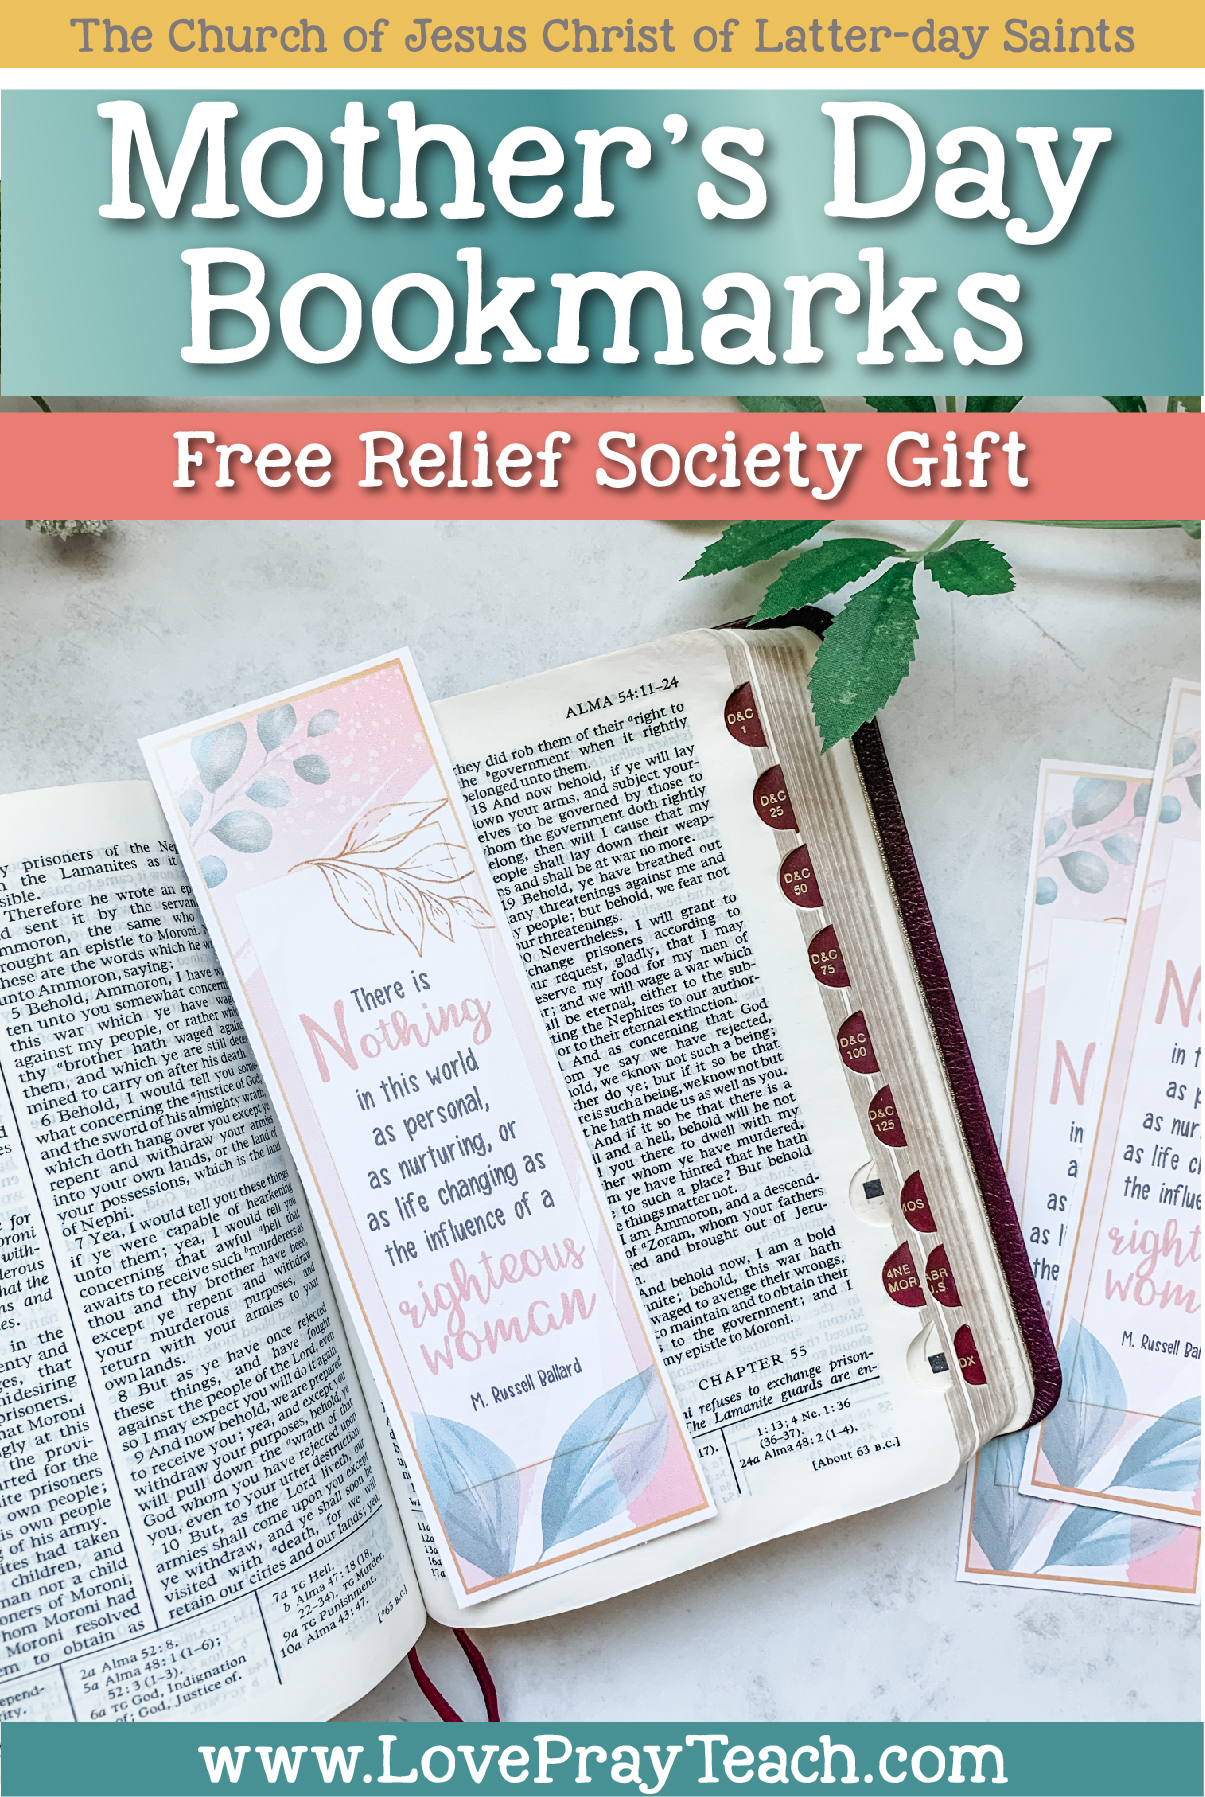 Free Mother's Day Bookmarks for Relief Society www.LovePrayTeach.com